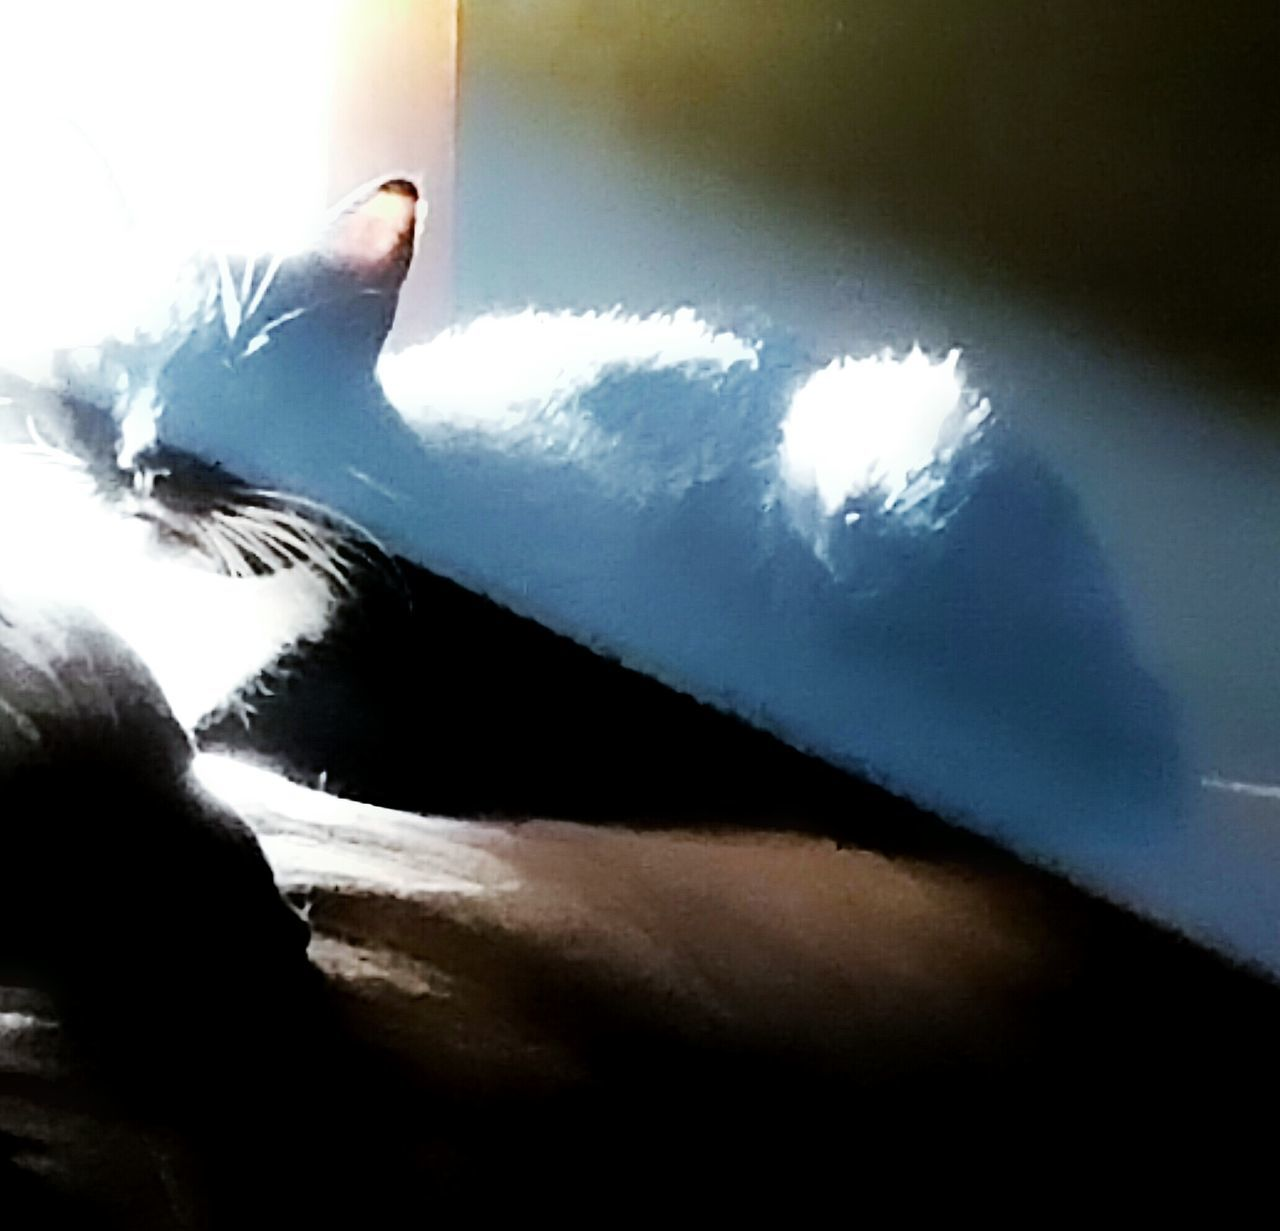 Light And Shadow Tones And Contrast Cat Sunning Sunbathing Cat Sitting In Window Sun Rays Beam Of Light Cat Photography Animal Photography Cat Lovers Animal Lovers Natural Light Photo Natural Light Portrait